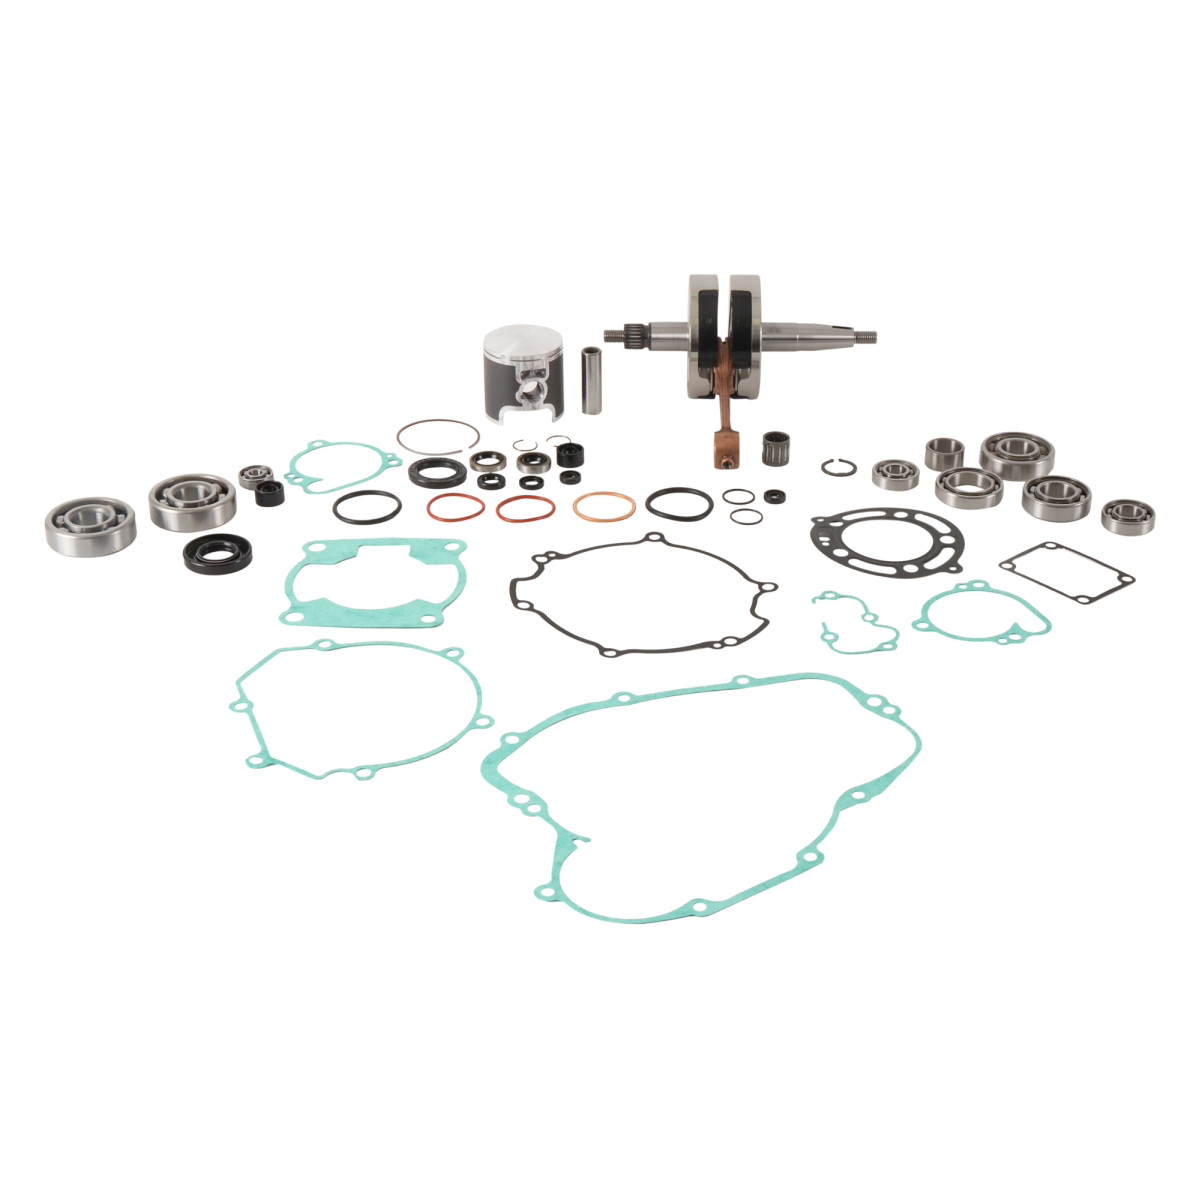 Wrench Rabbit Complete Engine Rebuild Kit For